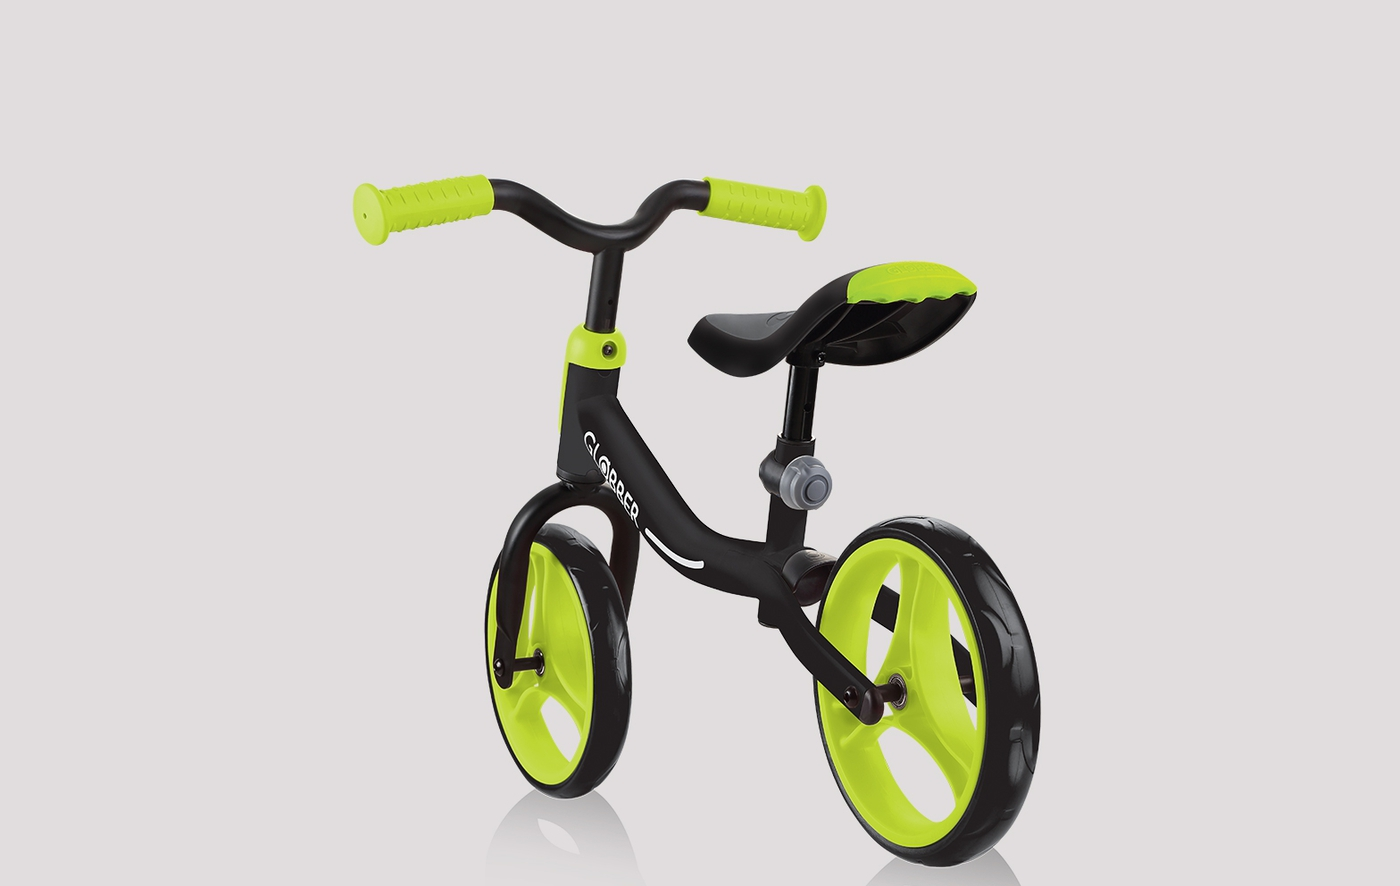 Easy to carry balance bike